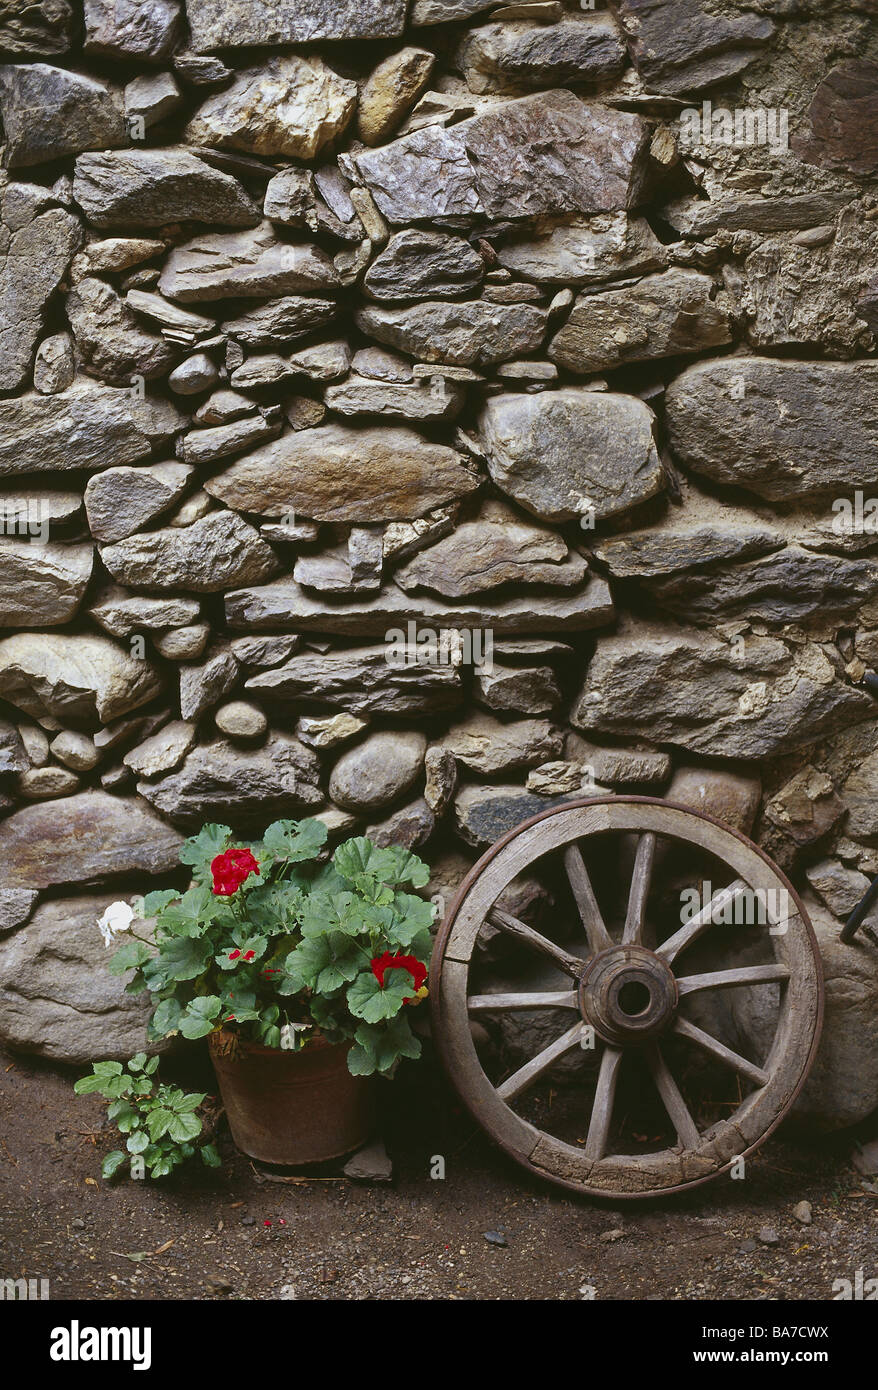 Stone wall detail decoration car wheel flowerpot wall stone stock stone wall detail decoration car wheel flowerpot wall stone nature stone buildings facade stones old flowers wheel wood wheel amipublicfo Images